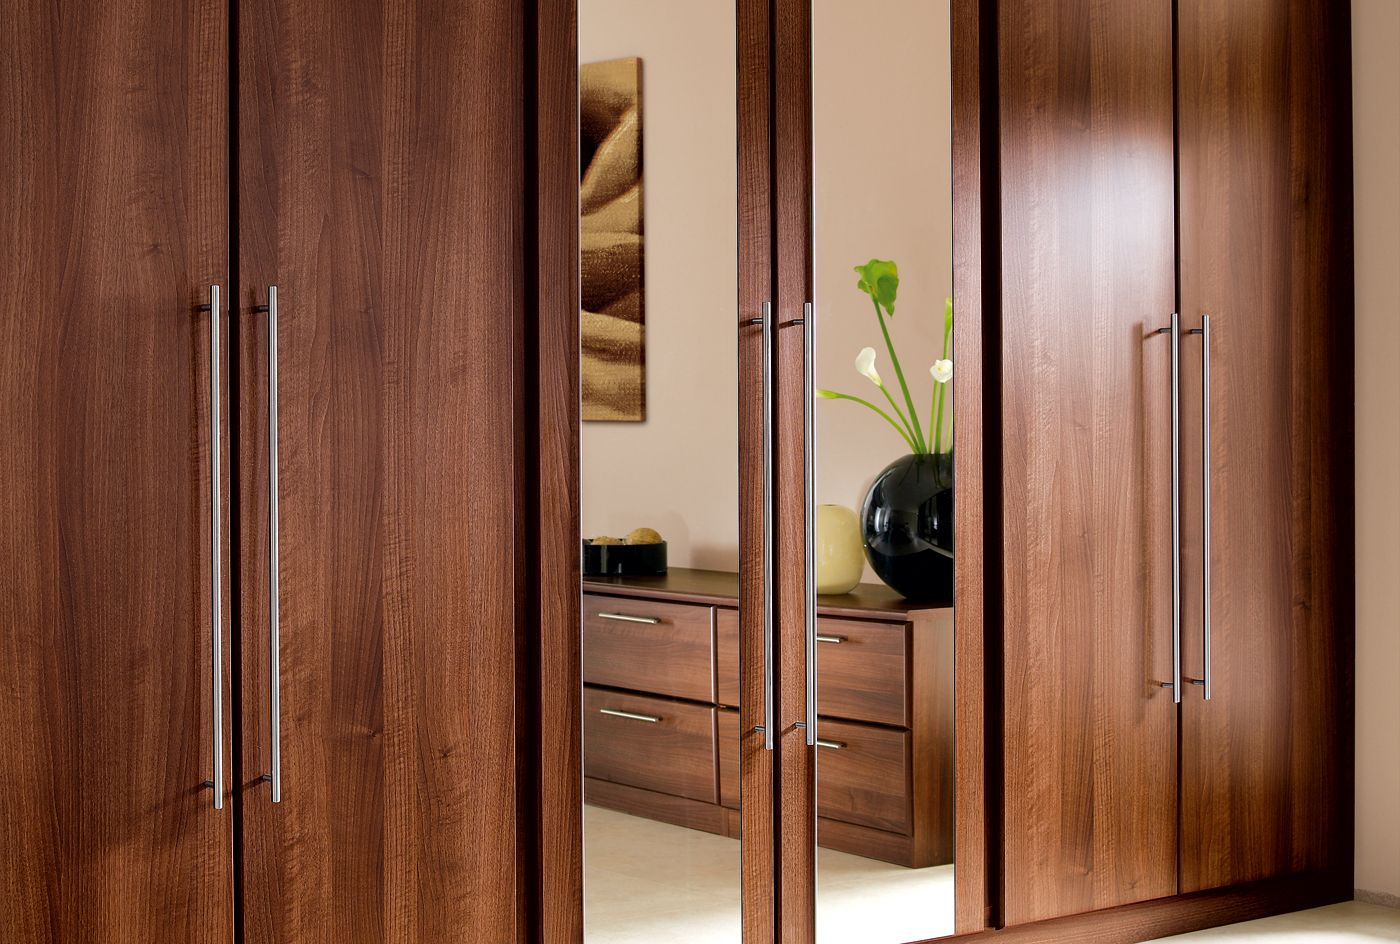 Spiegel Garderobe Mirror Wardrobe Doors Are A Wonderful Feature Of The